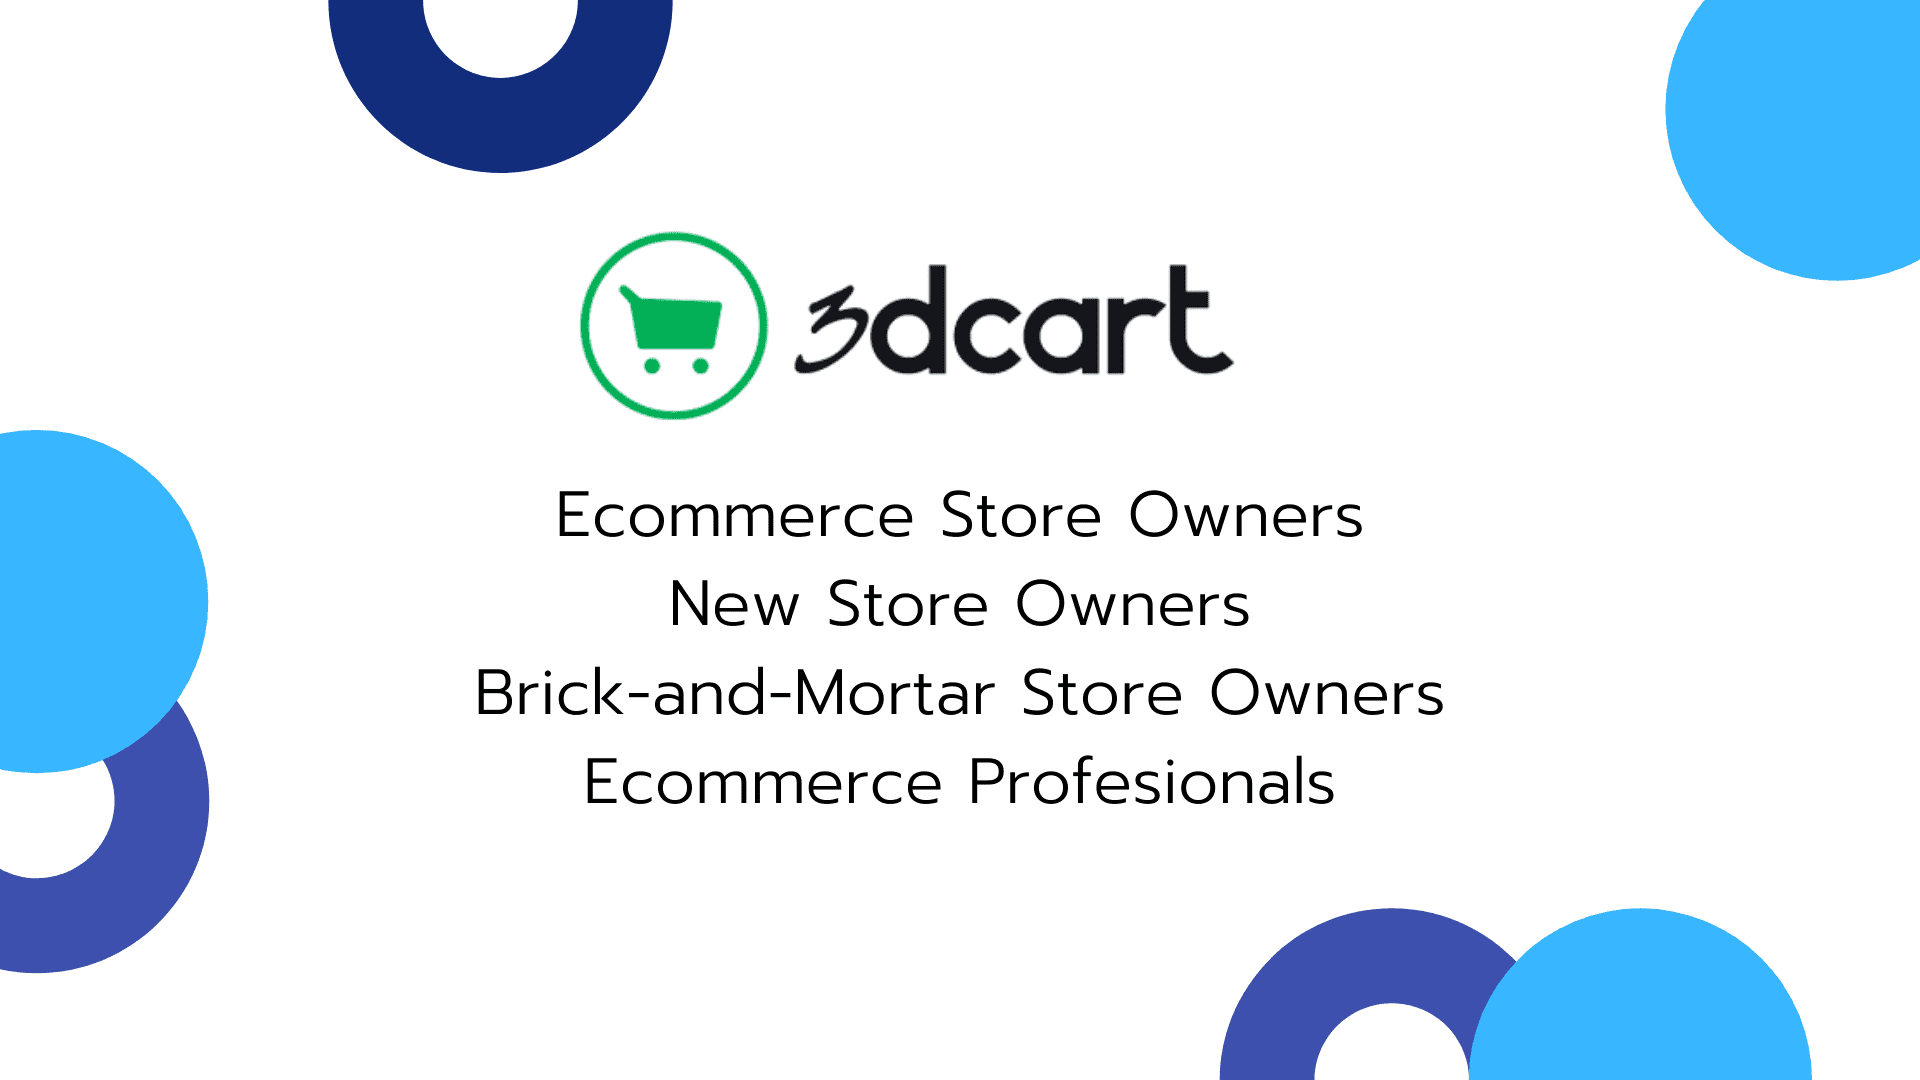 Who is 3dcart for